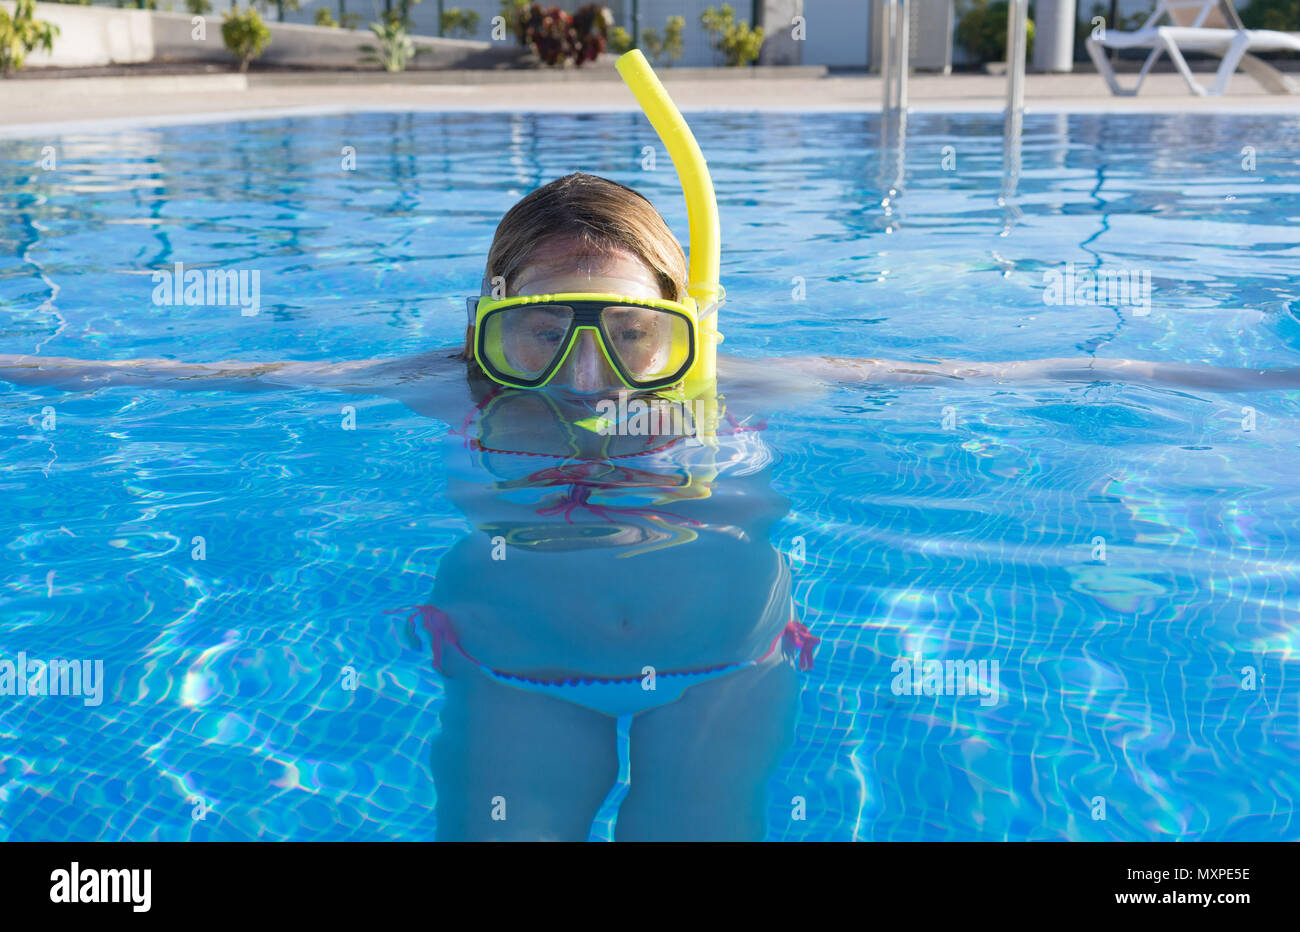 Woman in a swimming pool with a mask and snorkel on - Stock Image